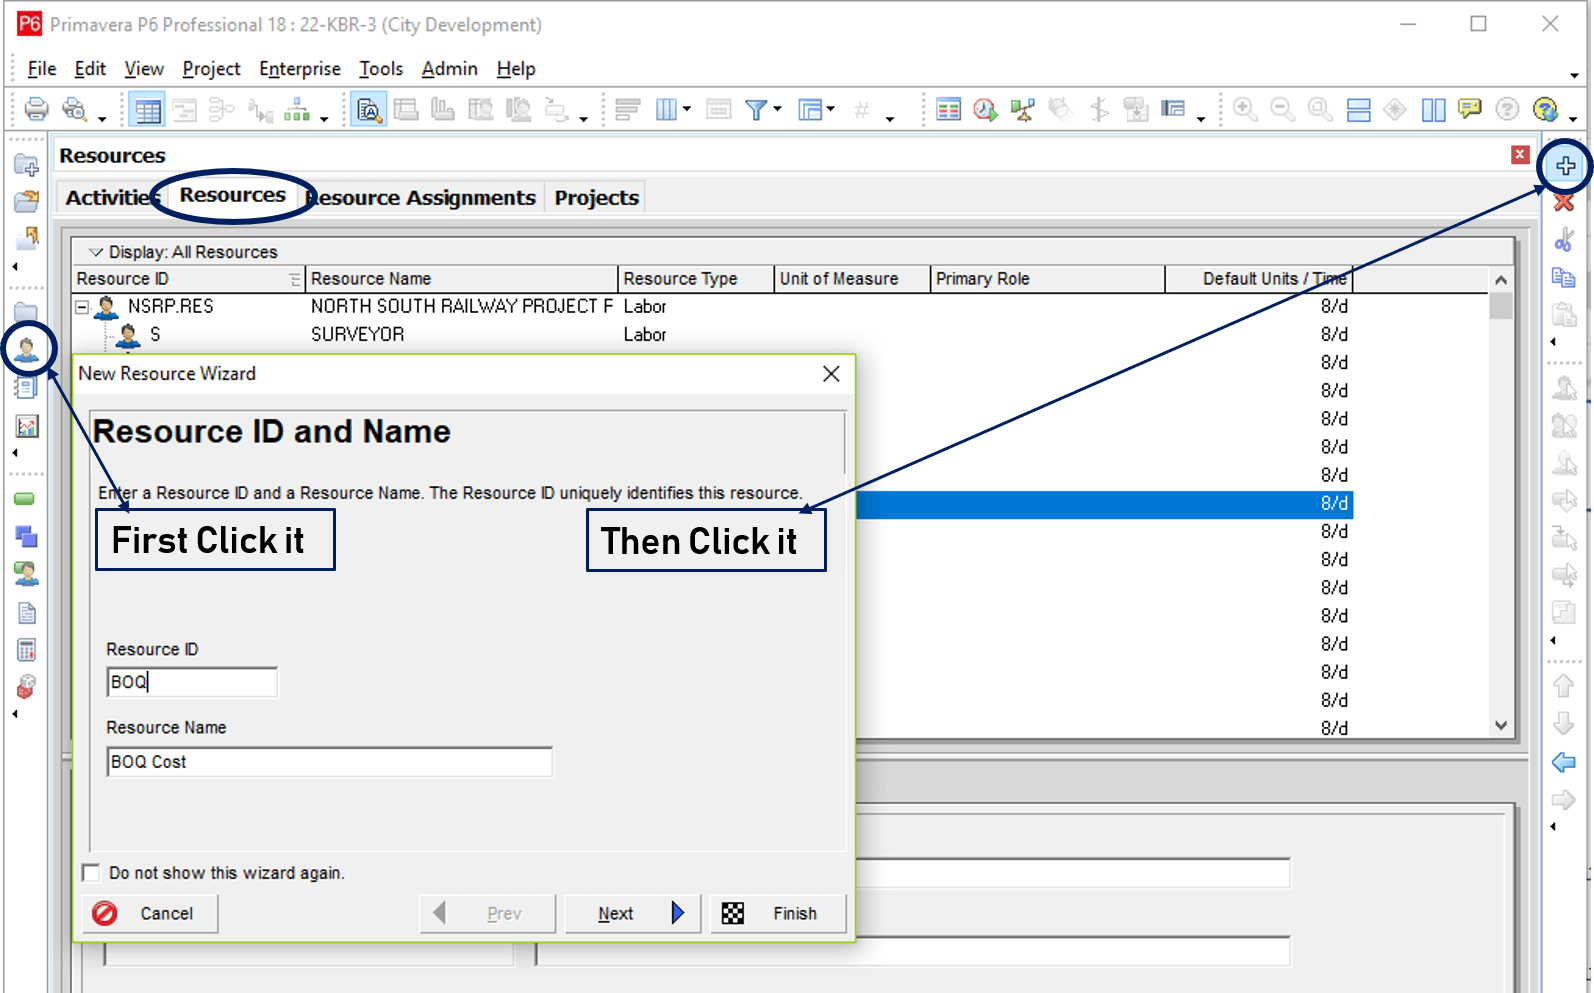 How to add resources in Primavera P6